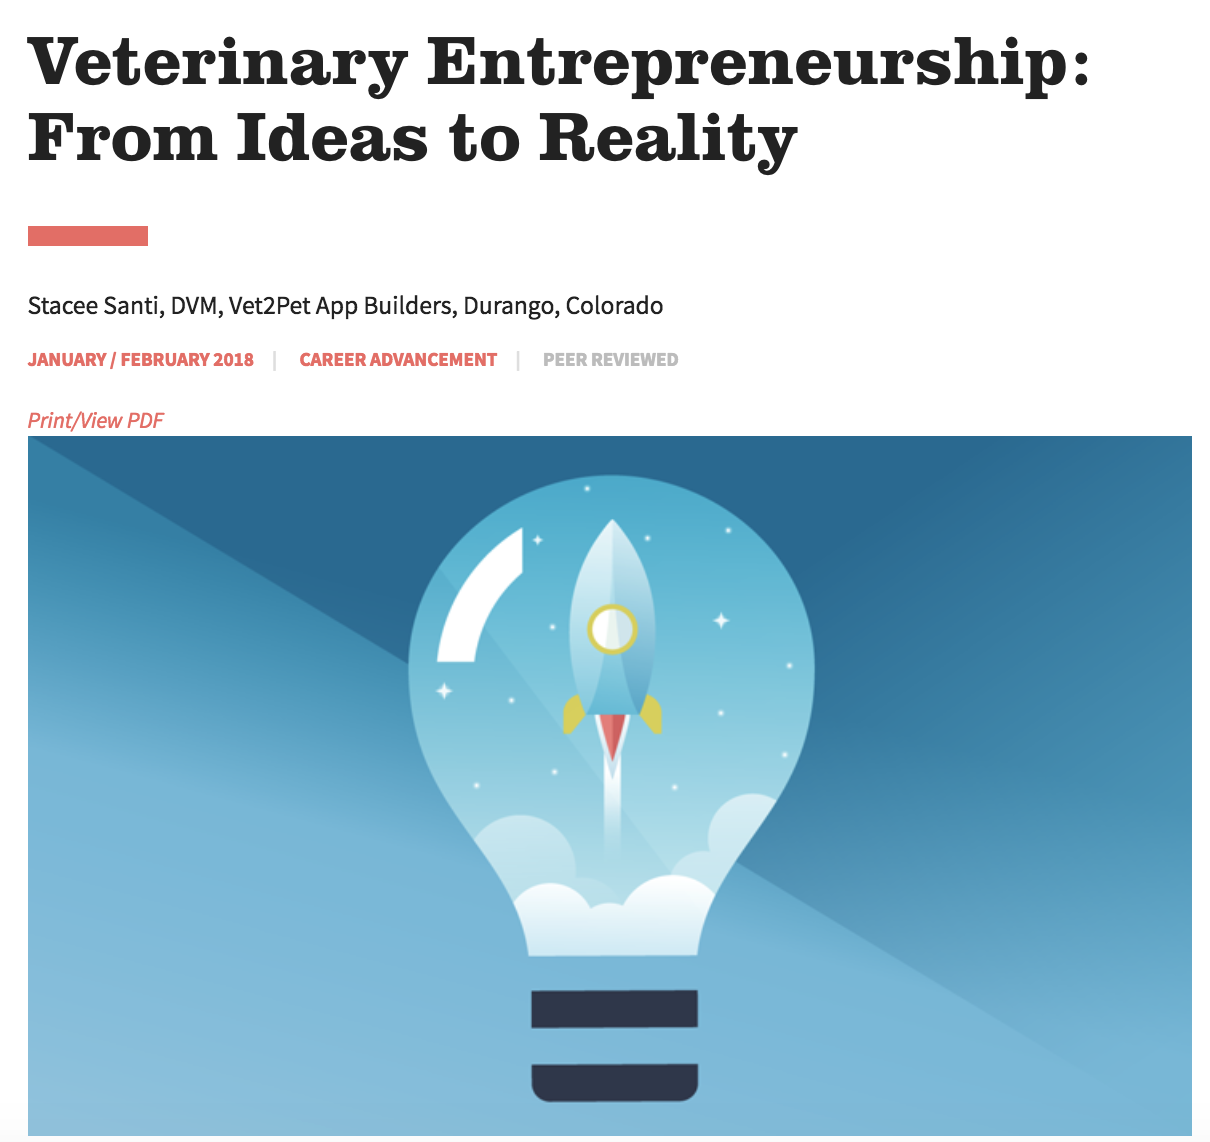 Veterinary Entrepreneurship: From Ideas to Reality